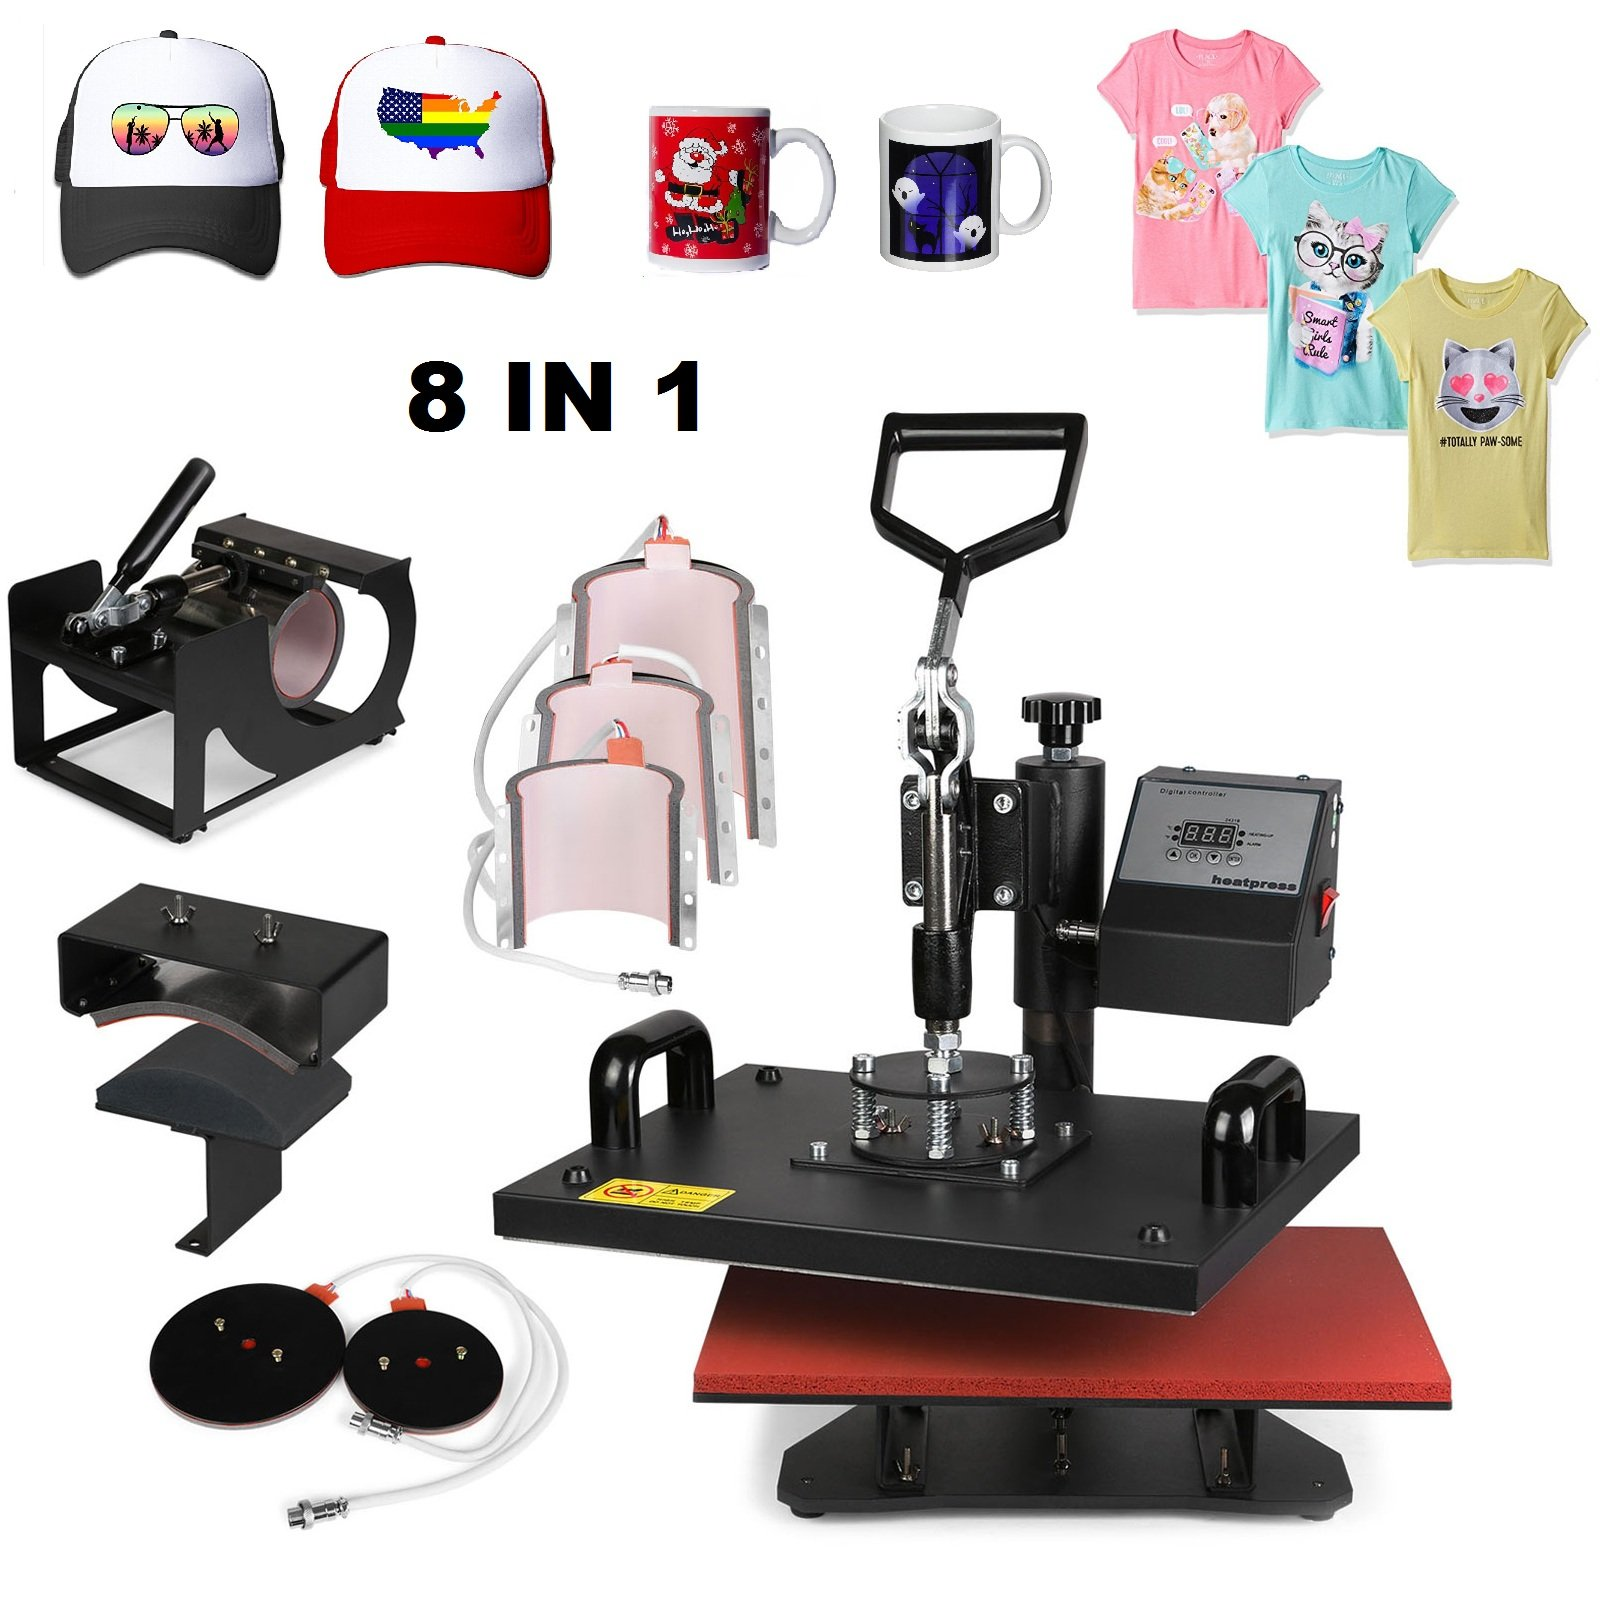 Superland 8 in 1 Digital Heat Press 12 x 15 Inch Multifunctional Transfer Sublimation T-Shirt Hat Mug Heat Press Machine (8 in 1: 12''x15'')